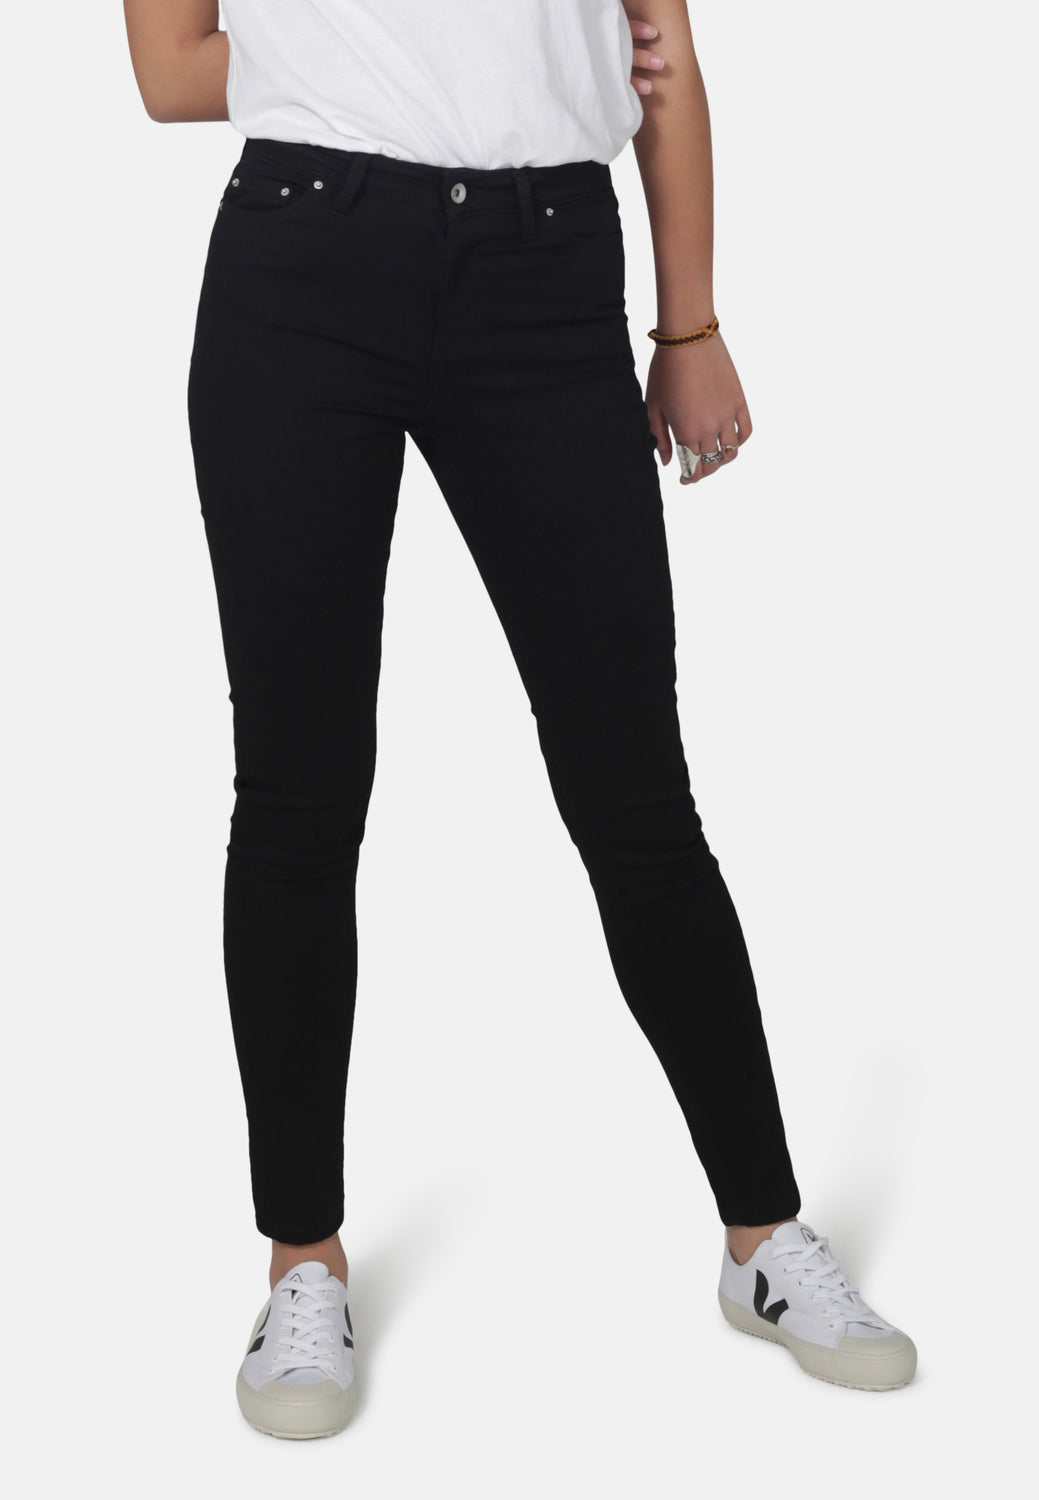 CODY // Recycled Organic Super Skinny Mid Waist Jeans in Black Jet - Monkee Genes Organic Jeans Denim - Organic Flex Women's Jeans Monkee Genes Official  Monkee Genes Official